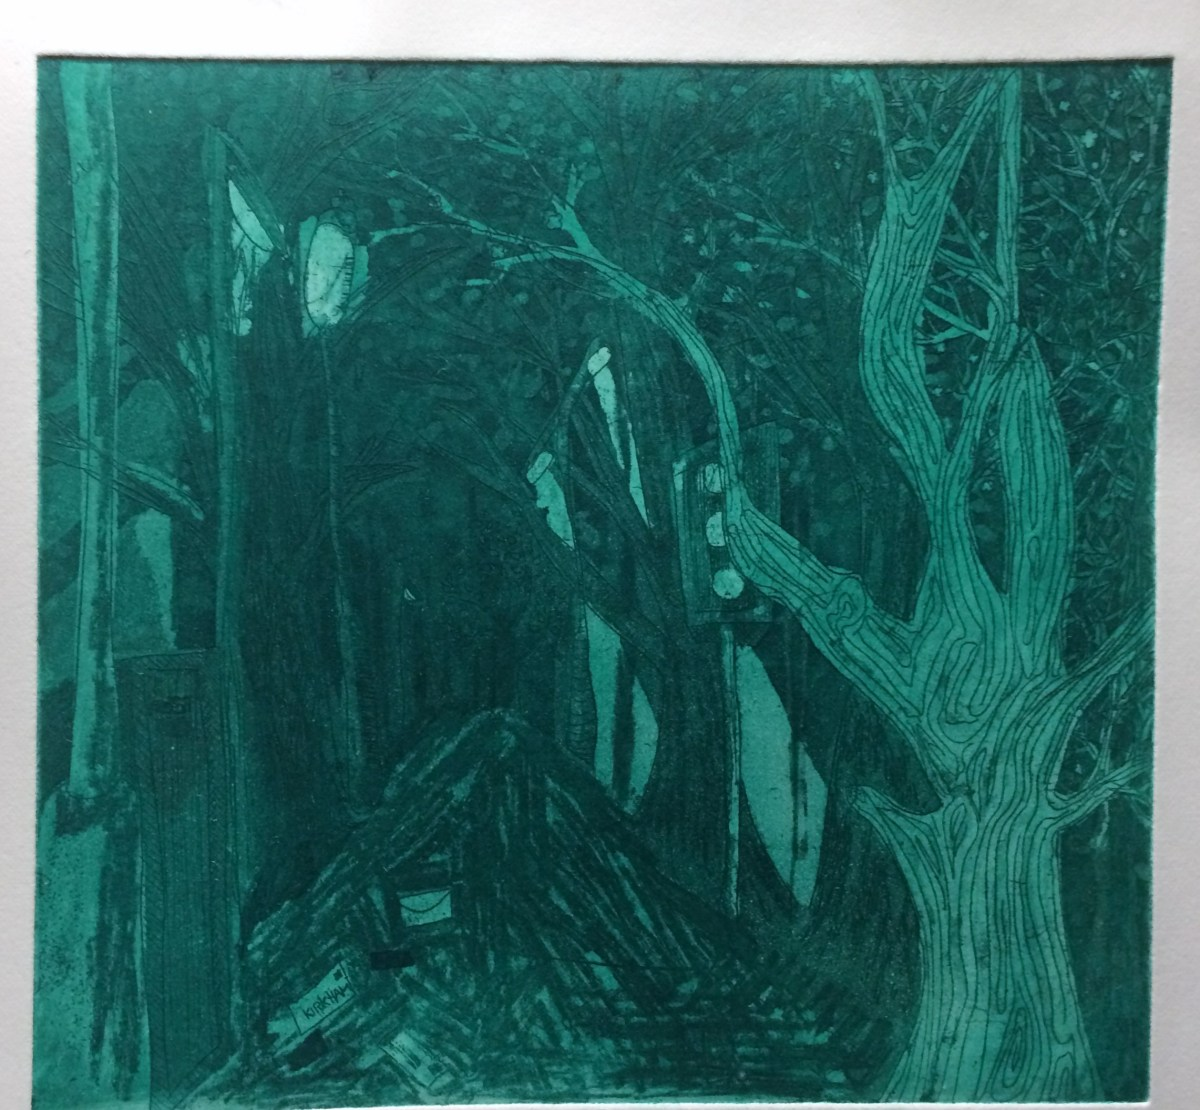 """Urban Forest"", 23x24cm, Green Ink Aquatint on Fabriano Paper, limited print run. Charlie Kirkham 2014."